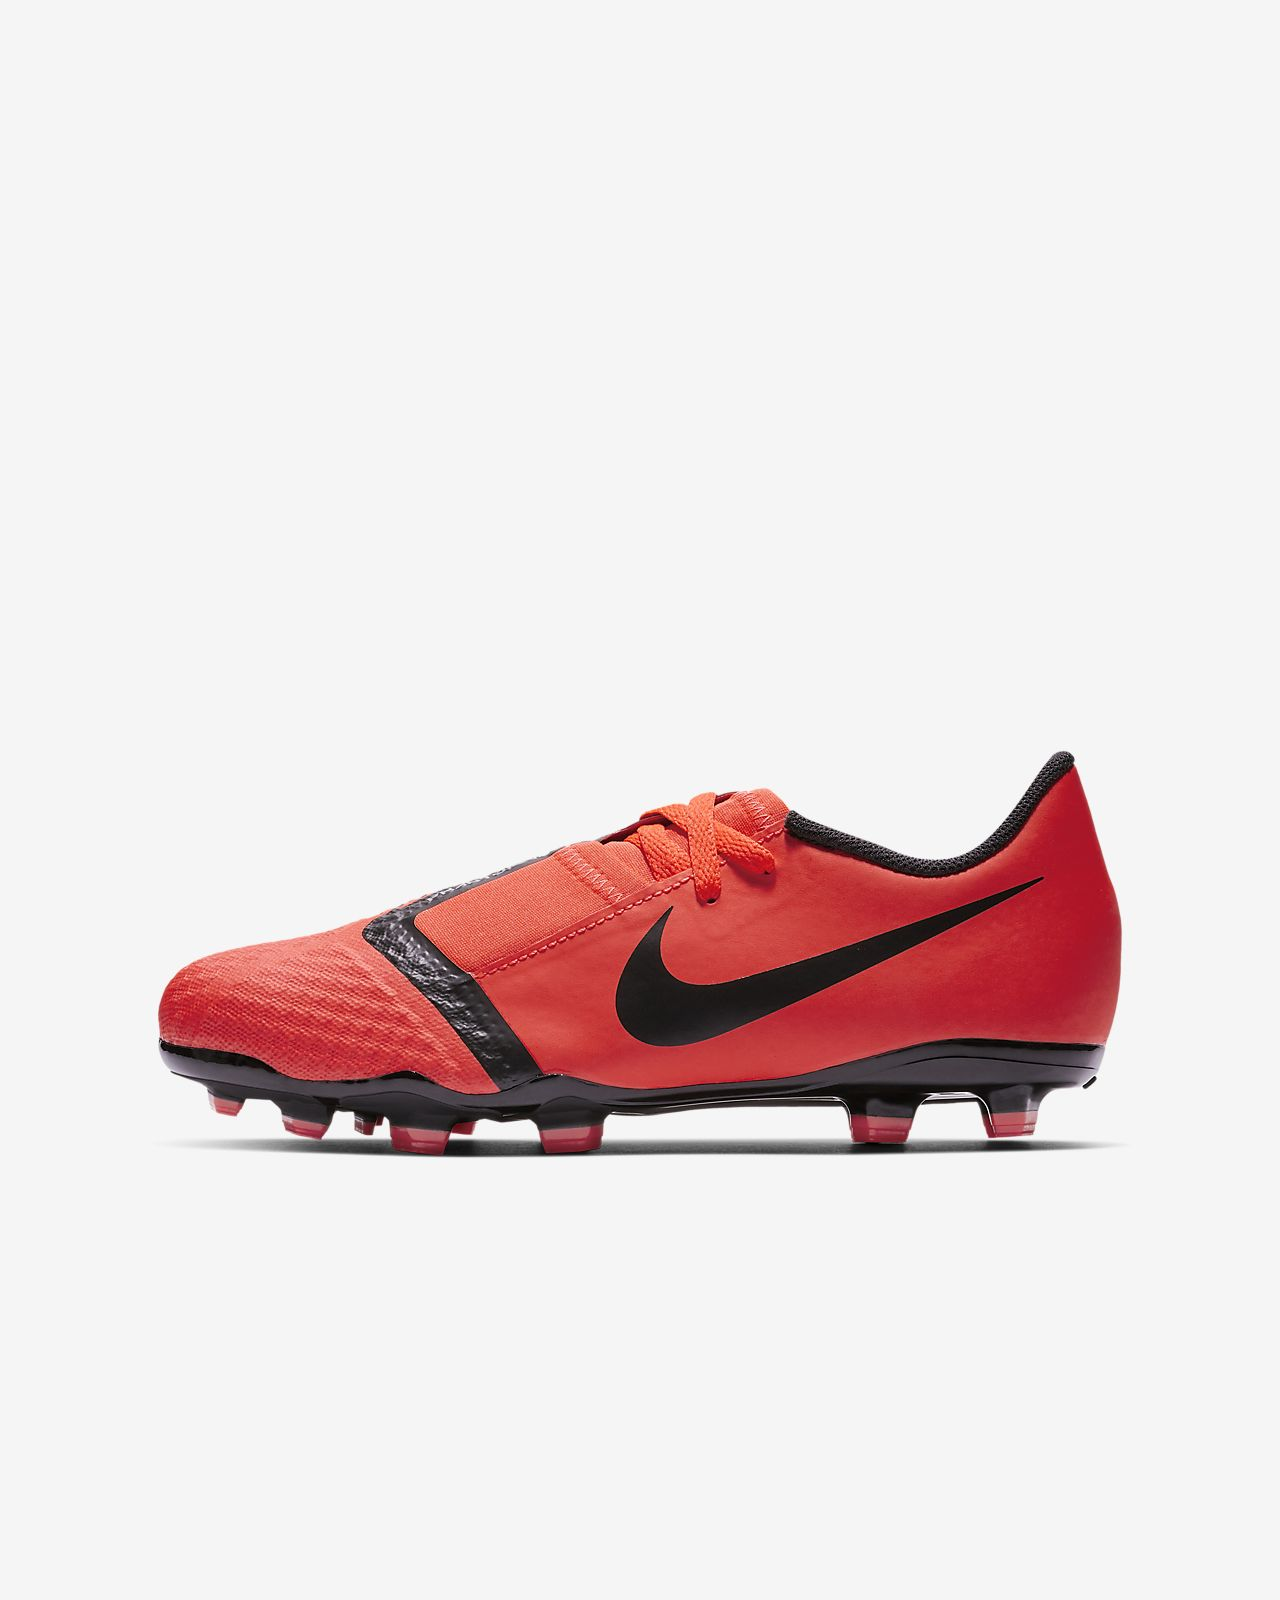 Nike Jr. PhantomVNM Academy FG Game Over Big Kids' Firm-Ground Soccer Cleat